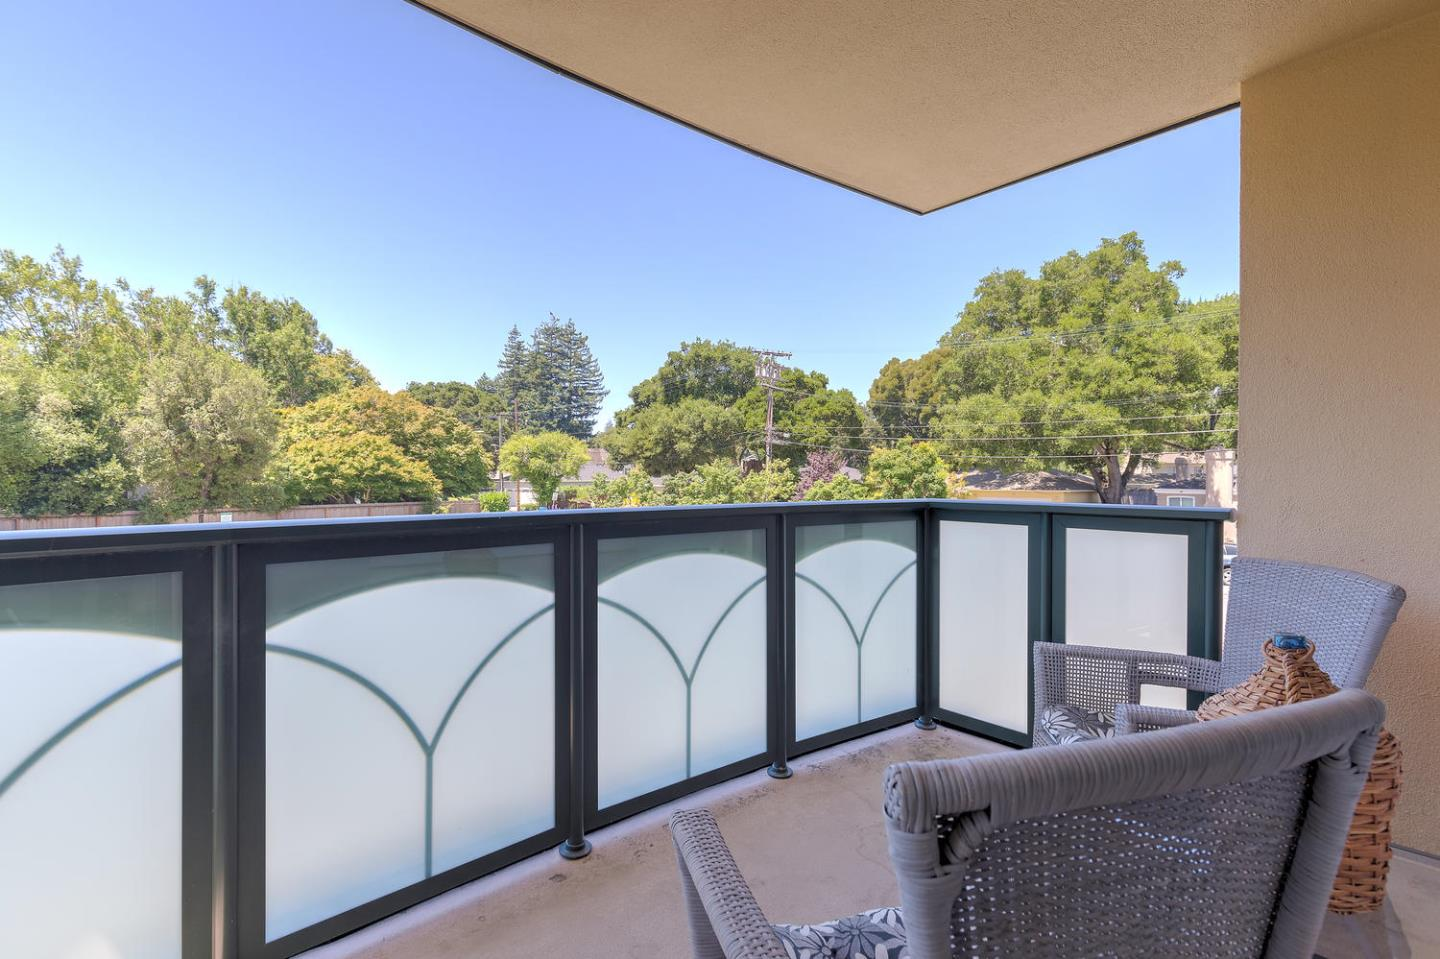 Additional photo for property listing at 10 Crystal Springs Road 10 Crystal Springs Road San Mateo, Kalifornien 94402 Vereinigte Staaten